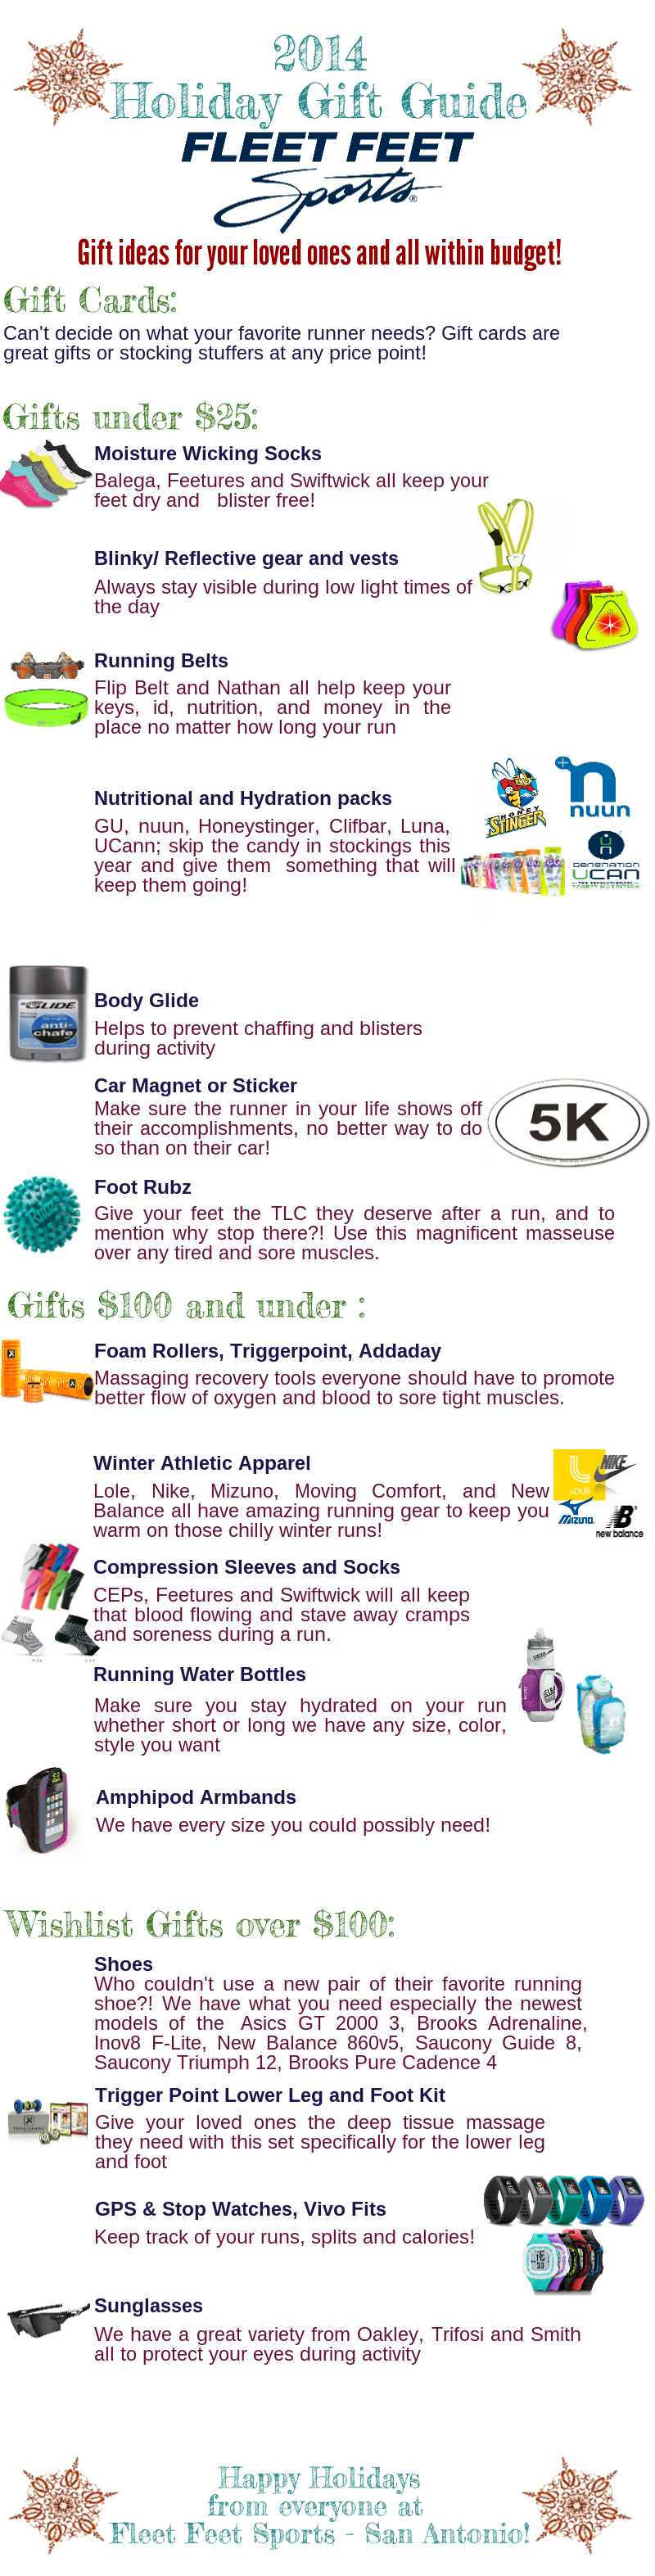 2014 Holiday Gift Guide Fleet Feet Sports San Antonio